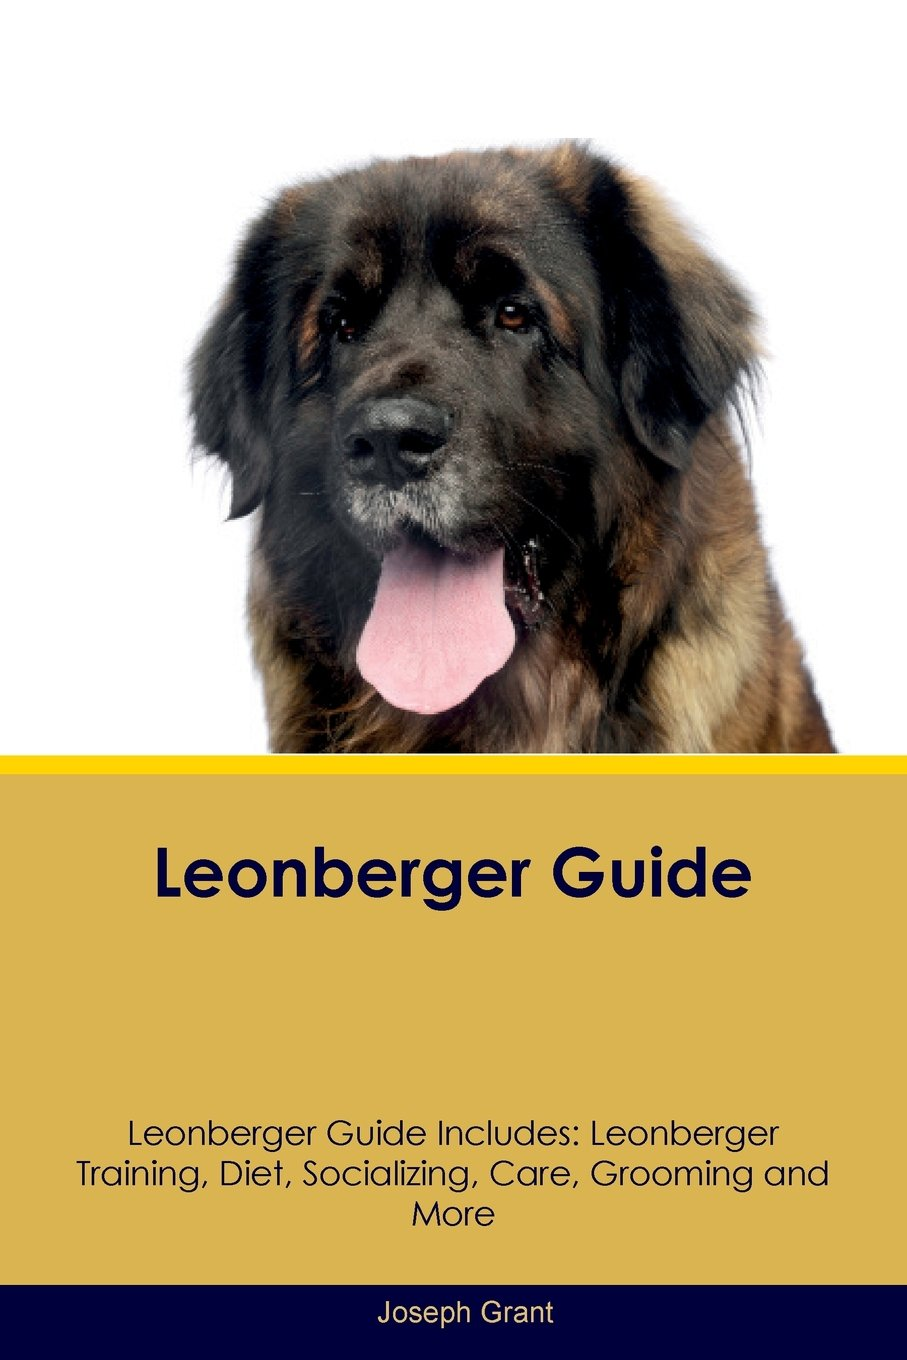 Leonberger Guide Leonberger Guide Includes: Leonberger Training, Diet, Socializing, Care, Grooming, Breeding and More pdf epub